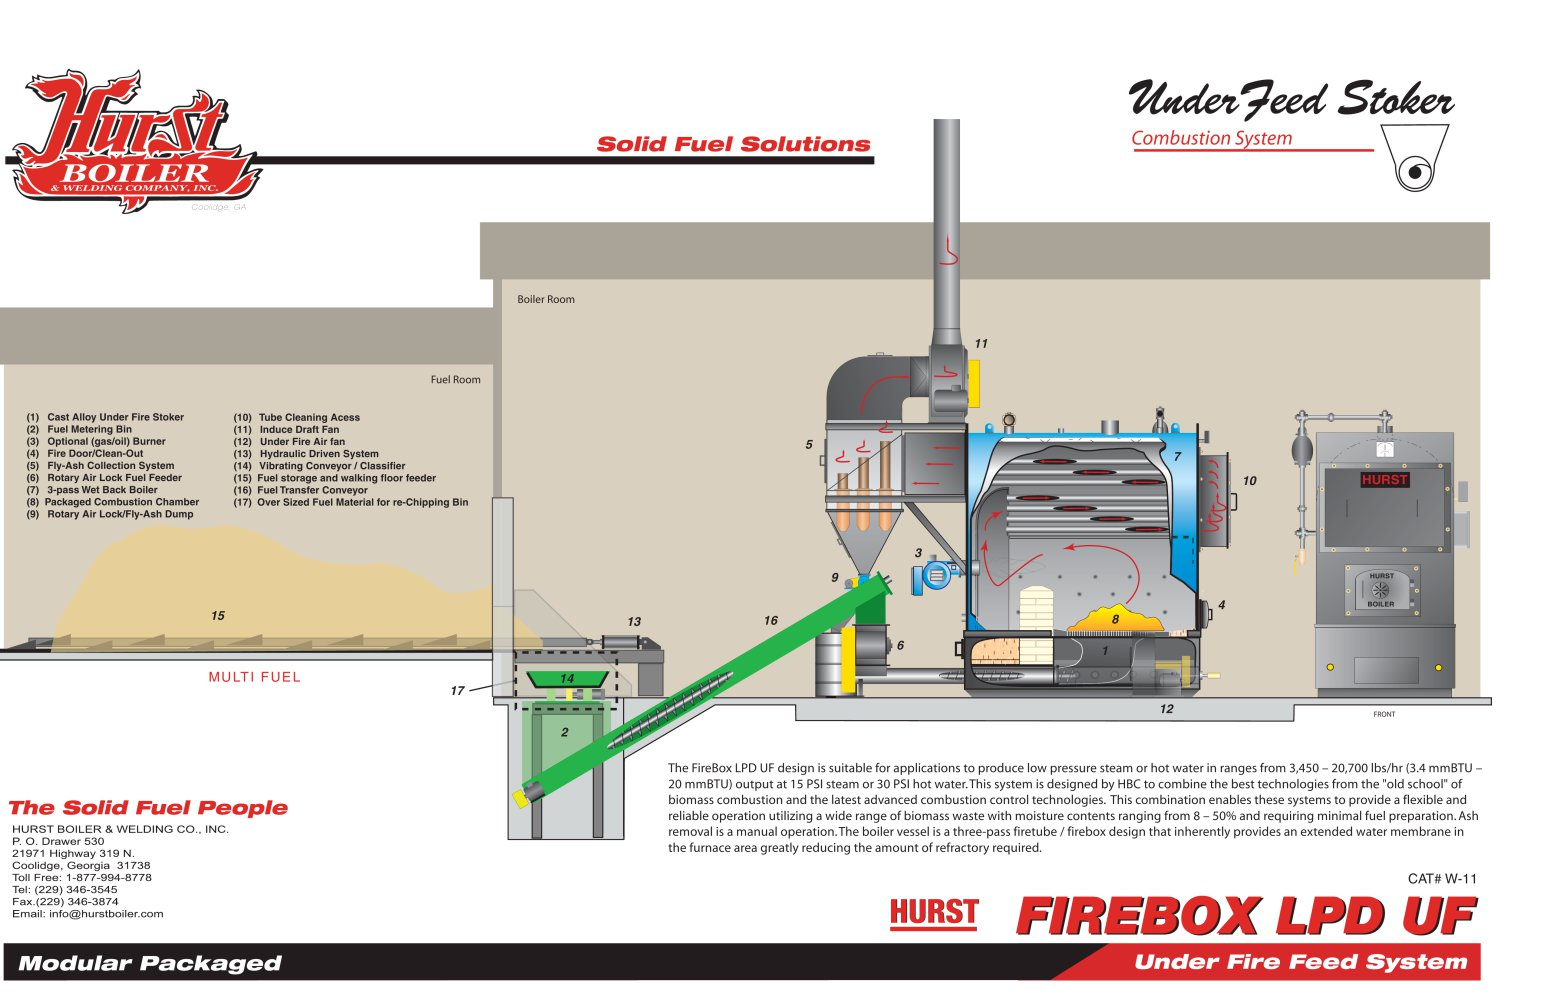 Wood 11 firebox fuel floor hurst boiler welding co inc wood 11 firebox fuel floor 1 1 pages pooptronica